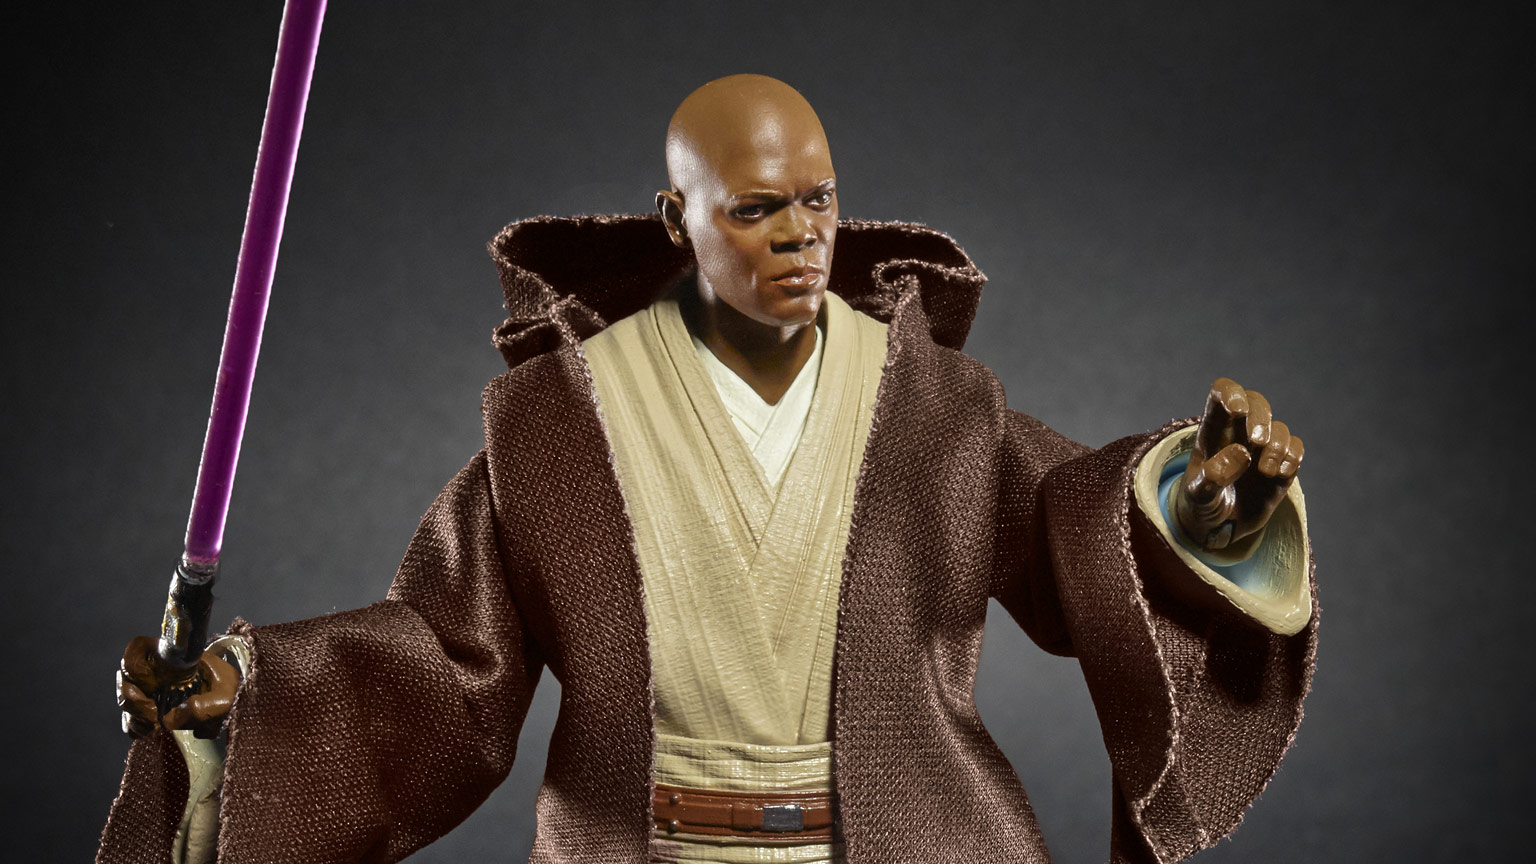 Mace Windu Star Wars: The Black Series figure.